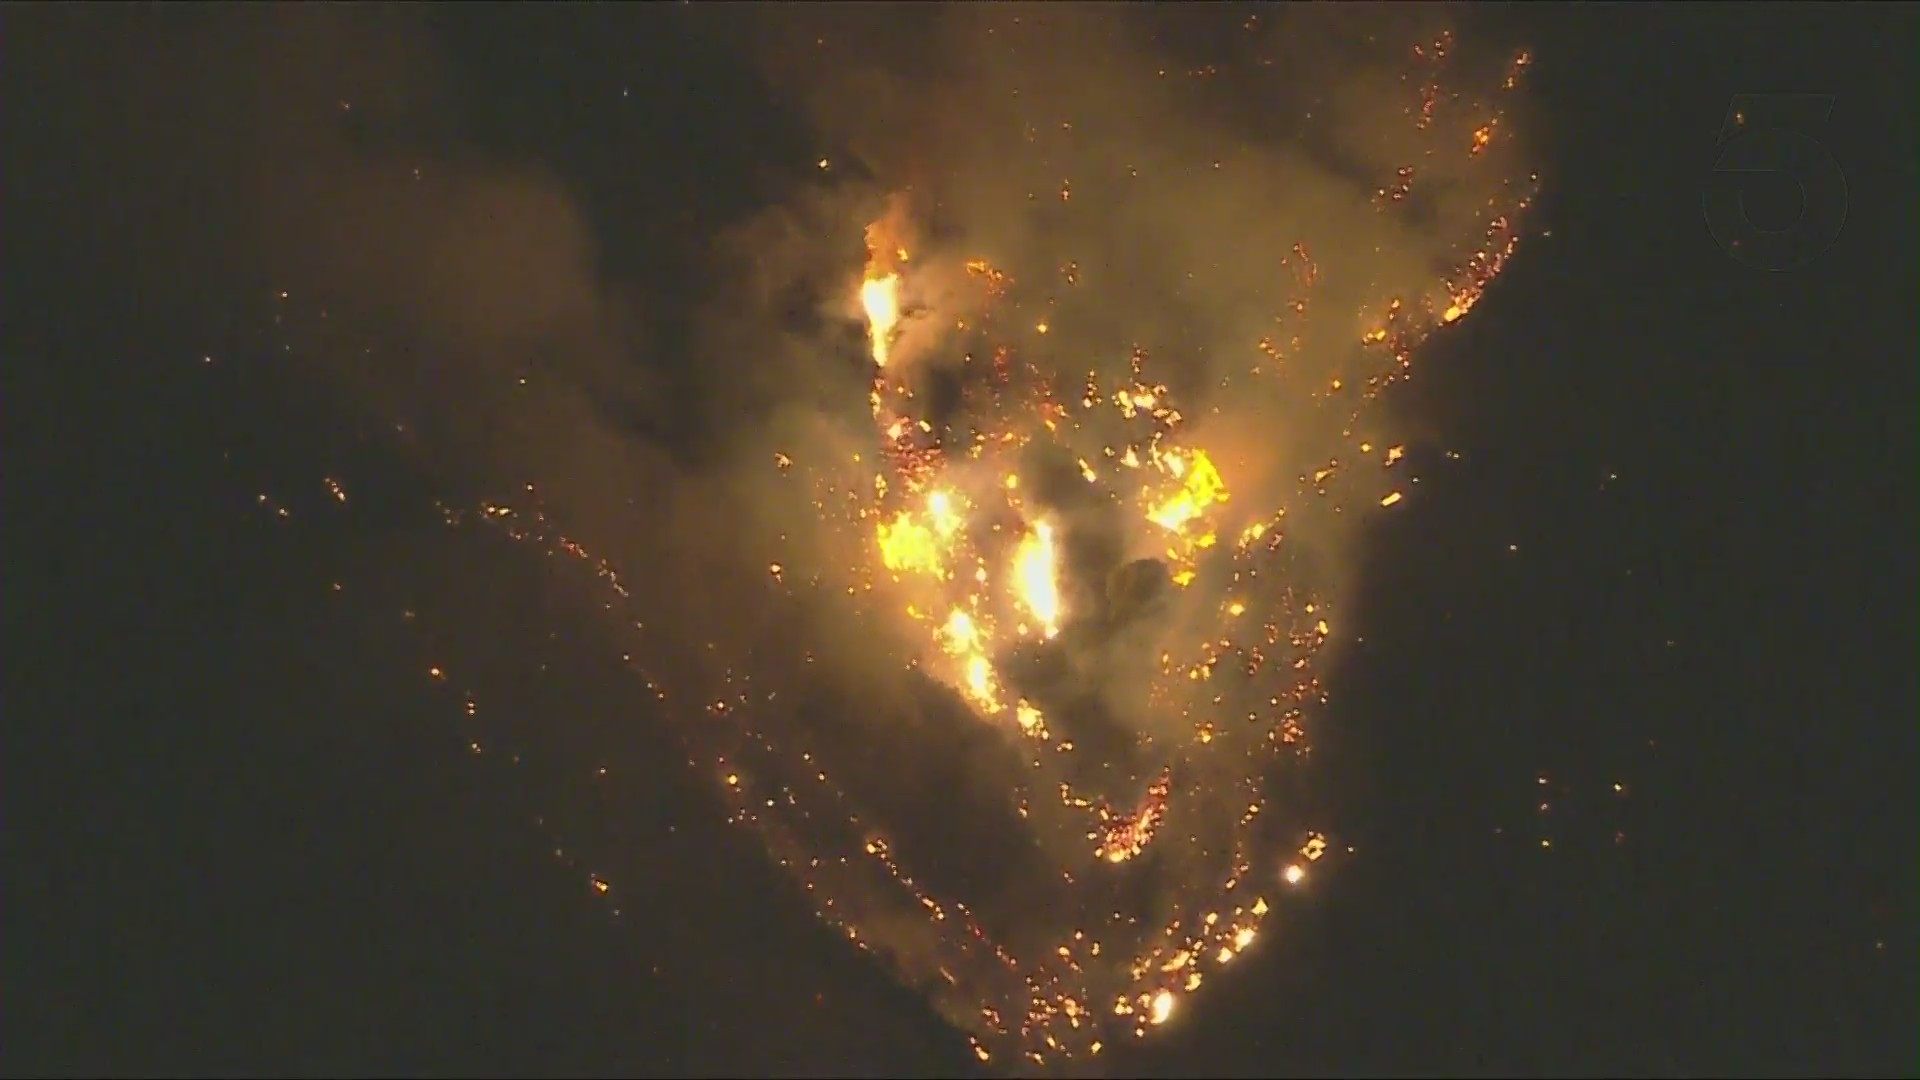 The Bobcat Fire continues burning the area of the Angeles National Forest on Sept. 21, 2020, after scorching more than 100,000 acres. (KTLA)